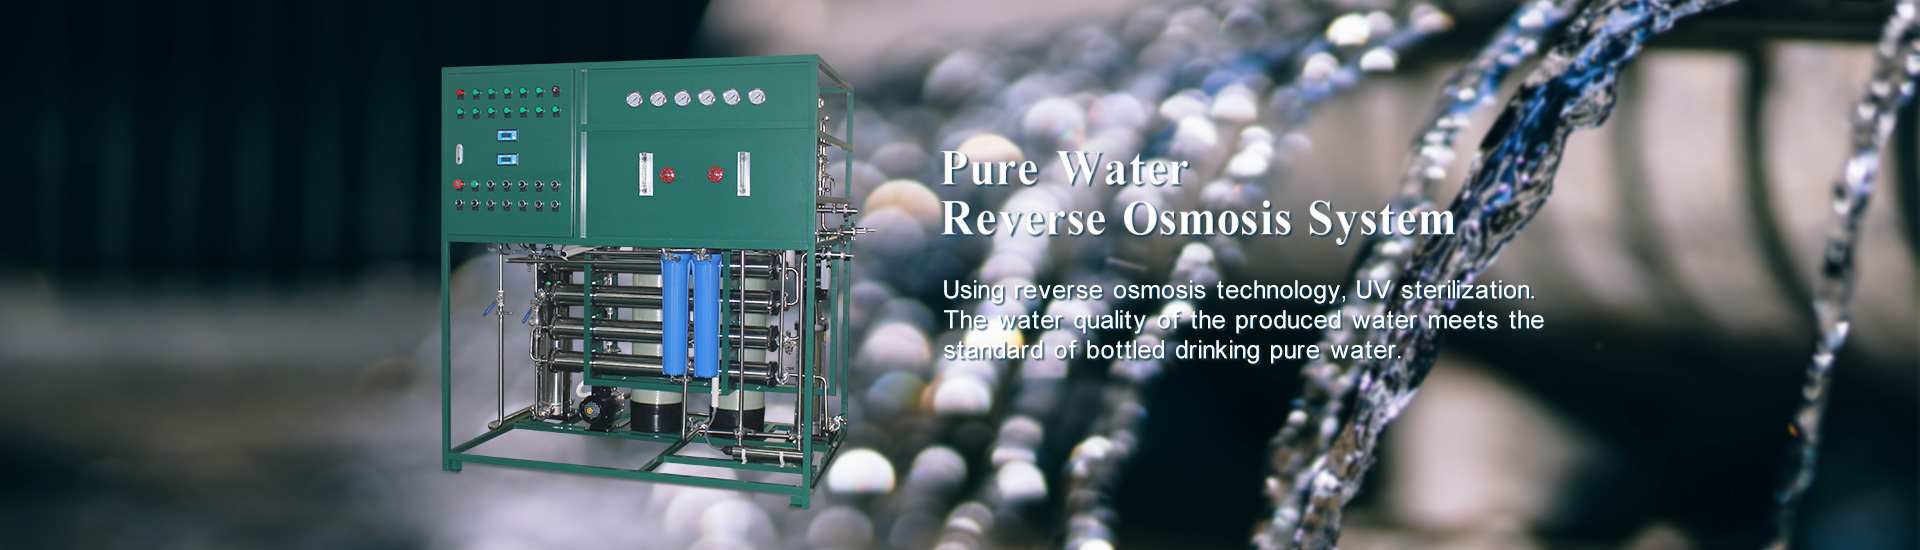 2-stage Pure Water RO system